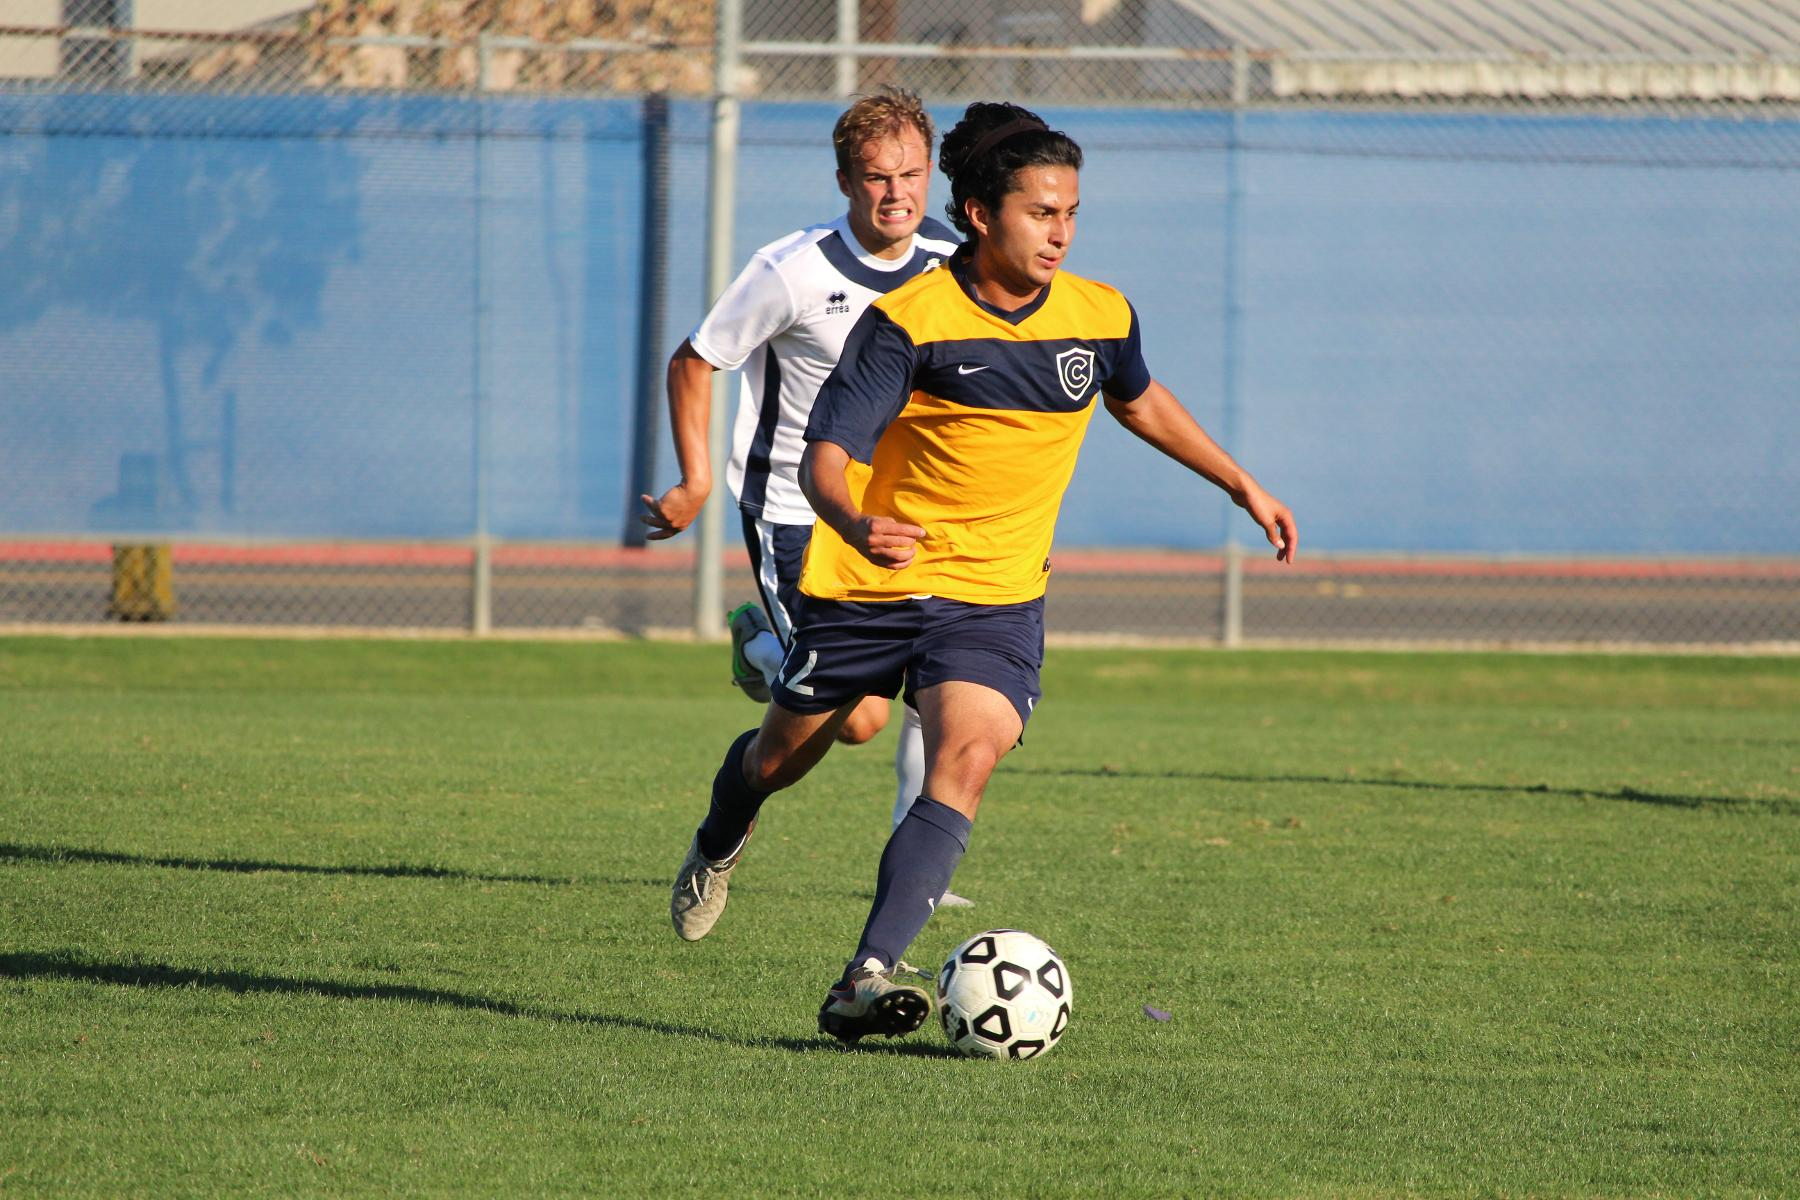 Men's Soccer Falls to Irvine Valley College, 4-2